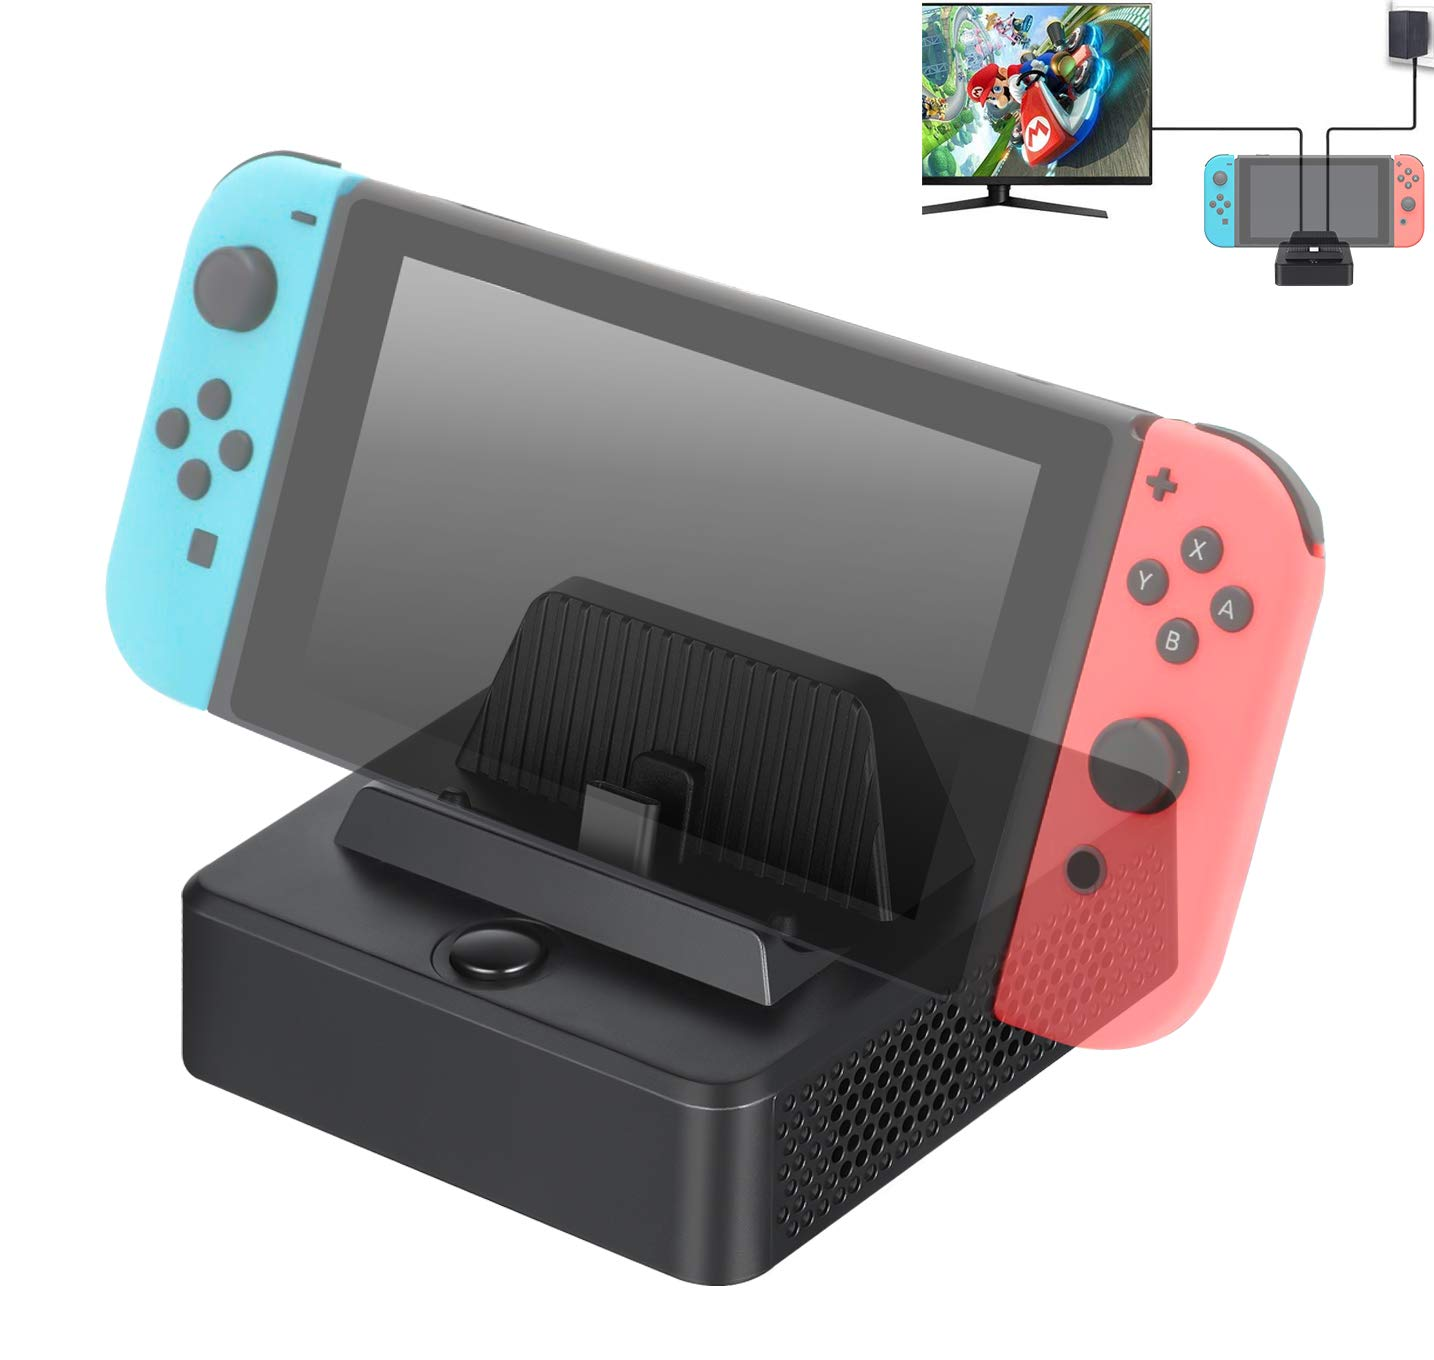 HOCOMO Docking Station for Nintendo Switch, Portable Switch Docking Stand to HDMI Adapter Switch Game Console with Extra USB 3.0 Port Input by Aurho